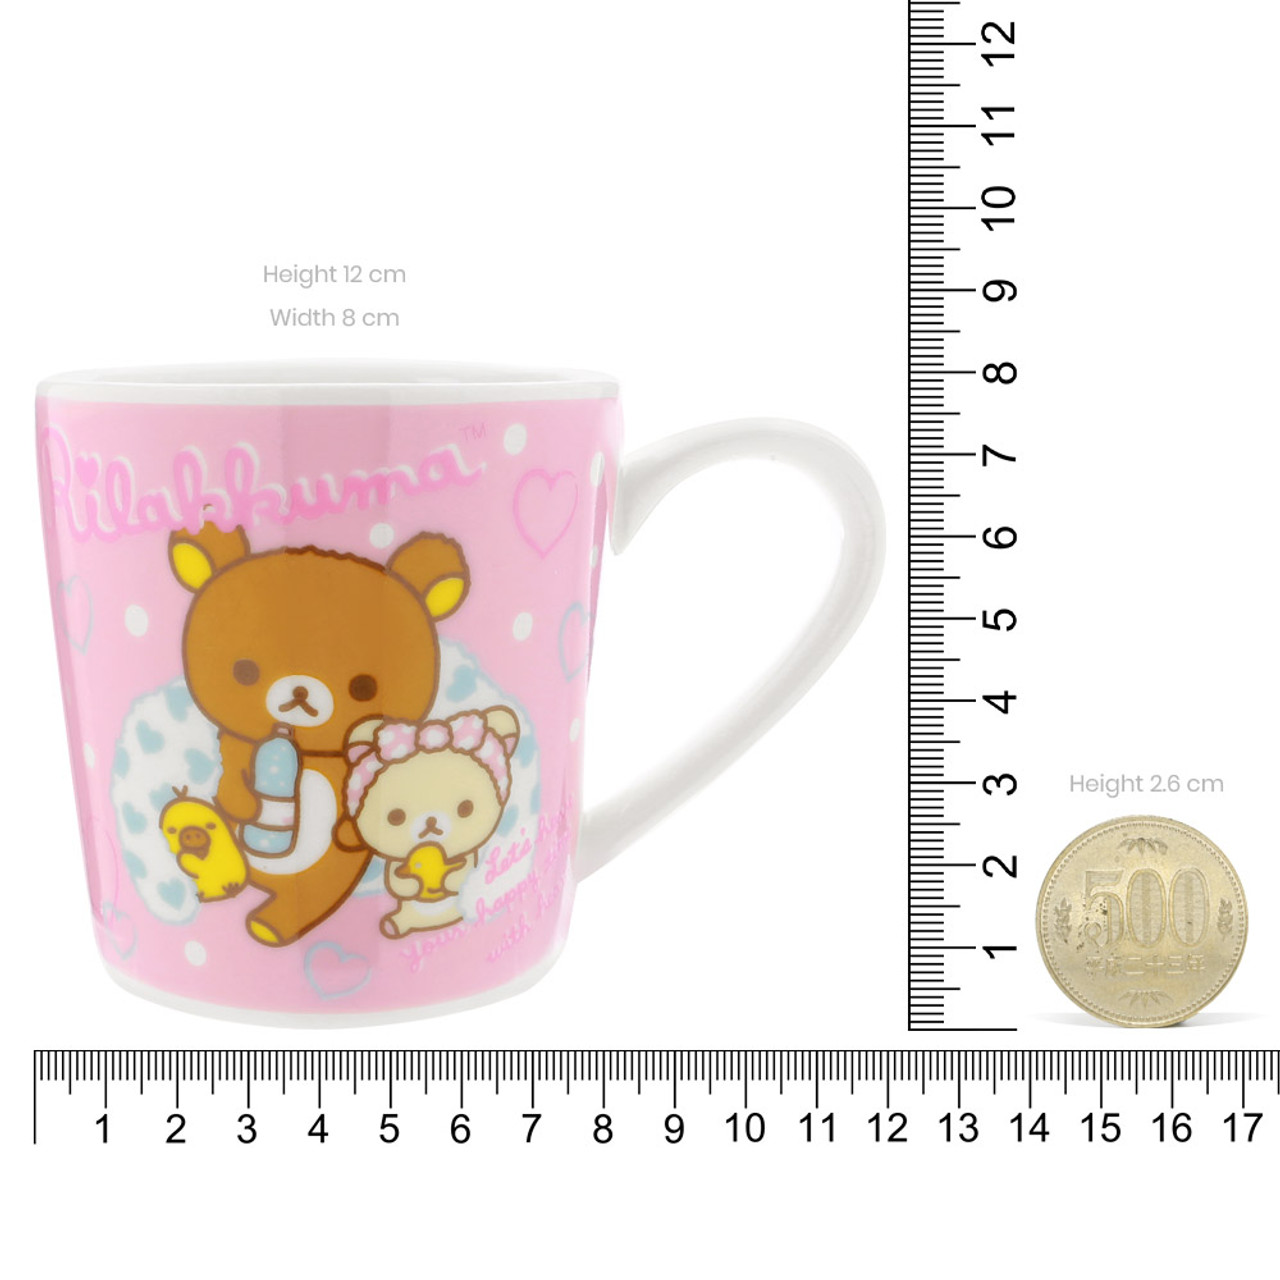 San-x Rilakkuma Bath Time Light Pink Ceramic Mug - Bubble ( Proportion )